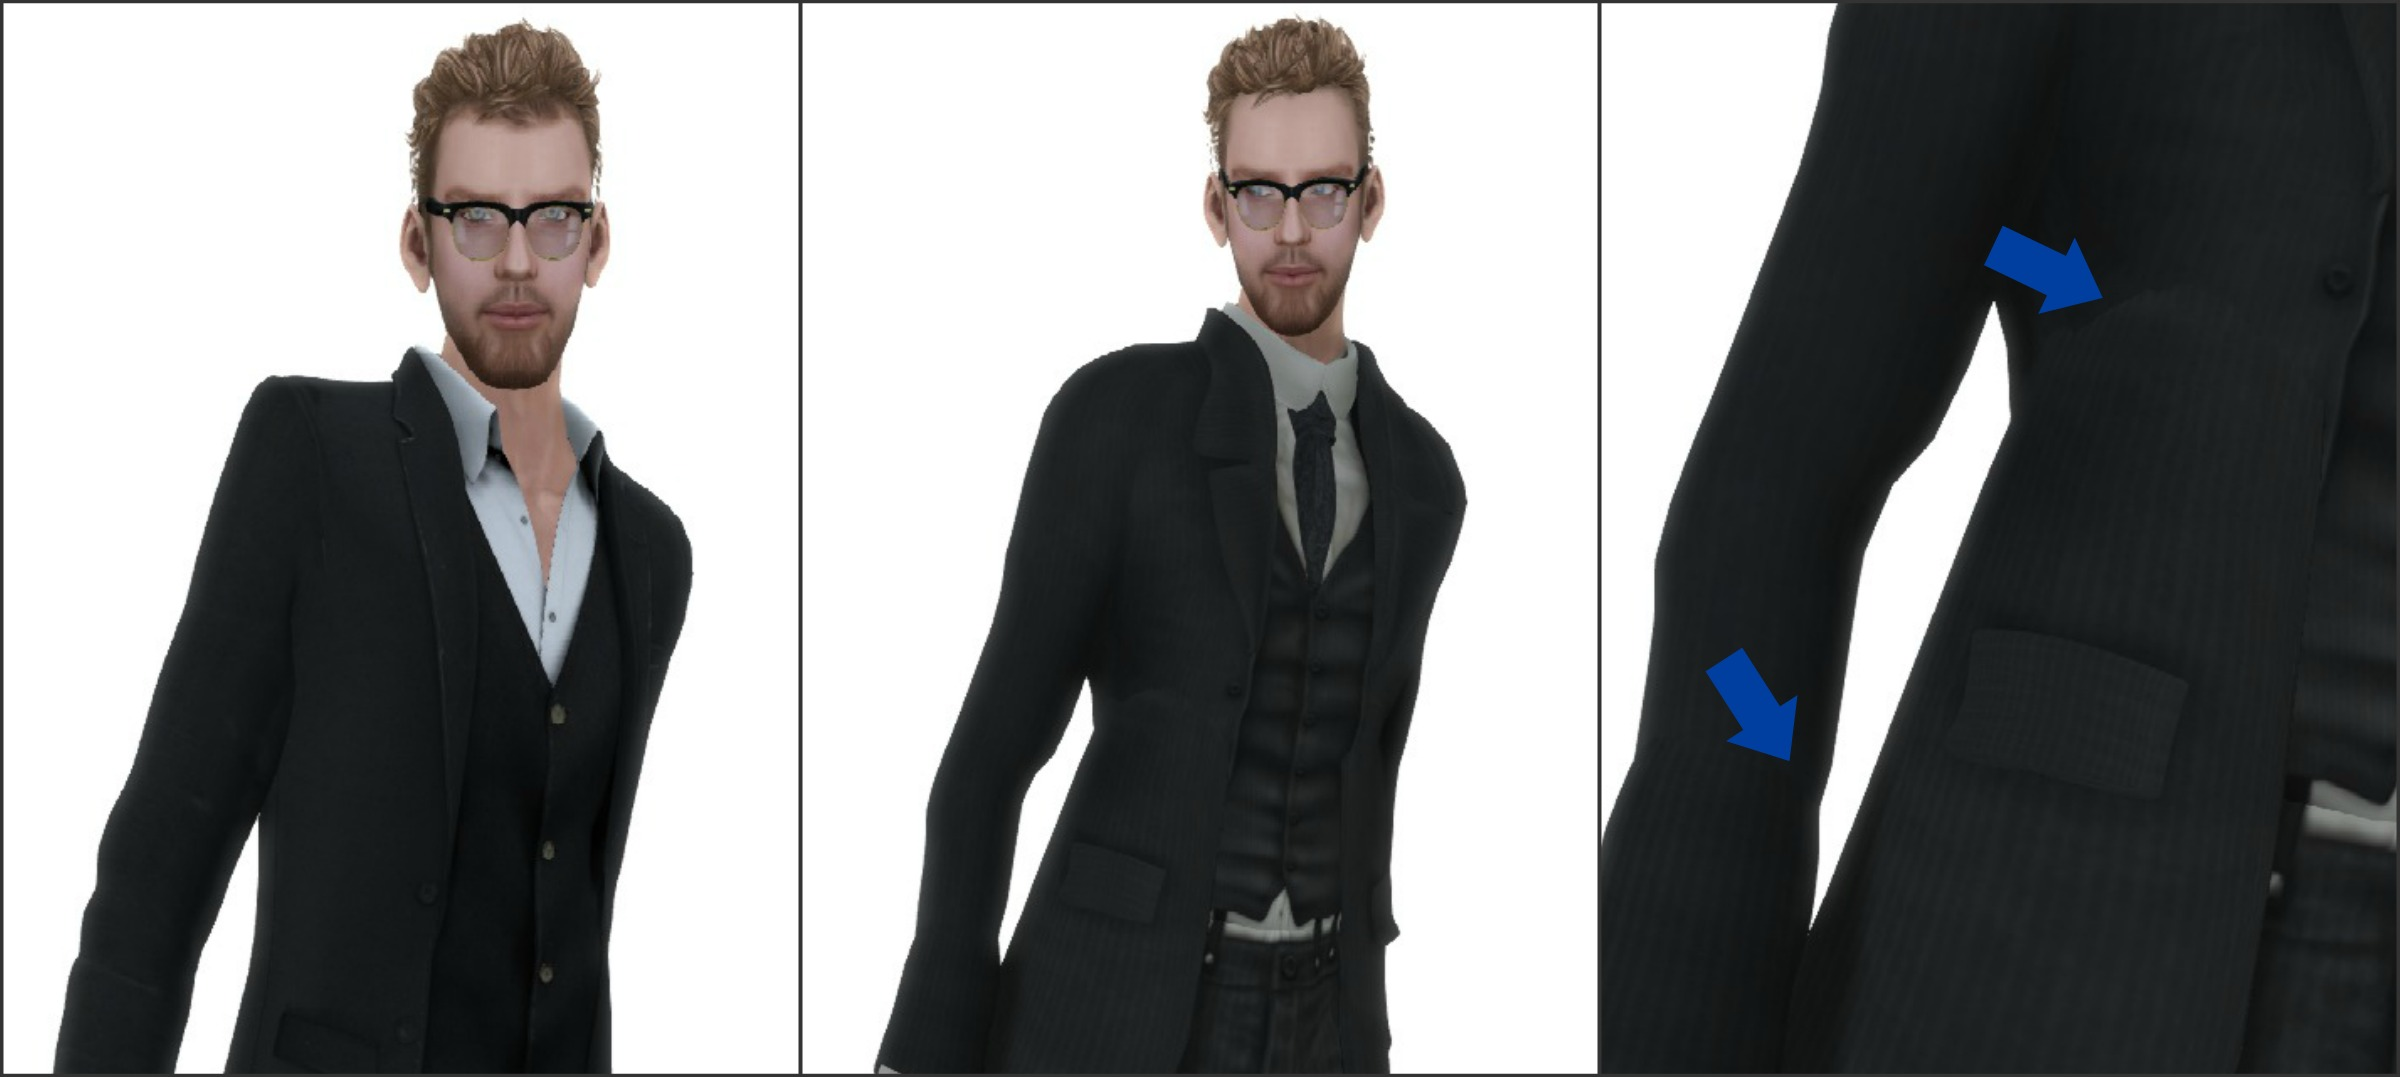 mesh suit compared to prims.jpg